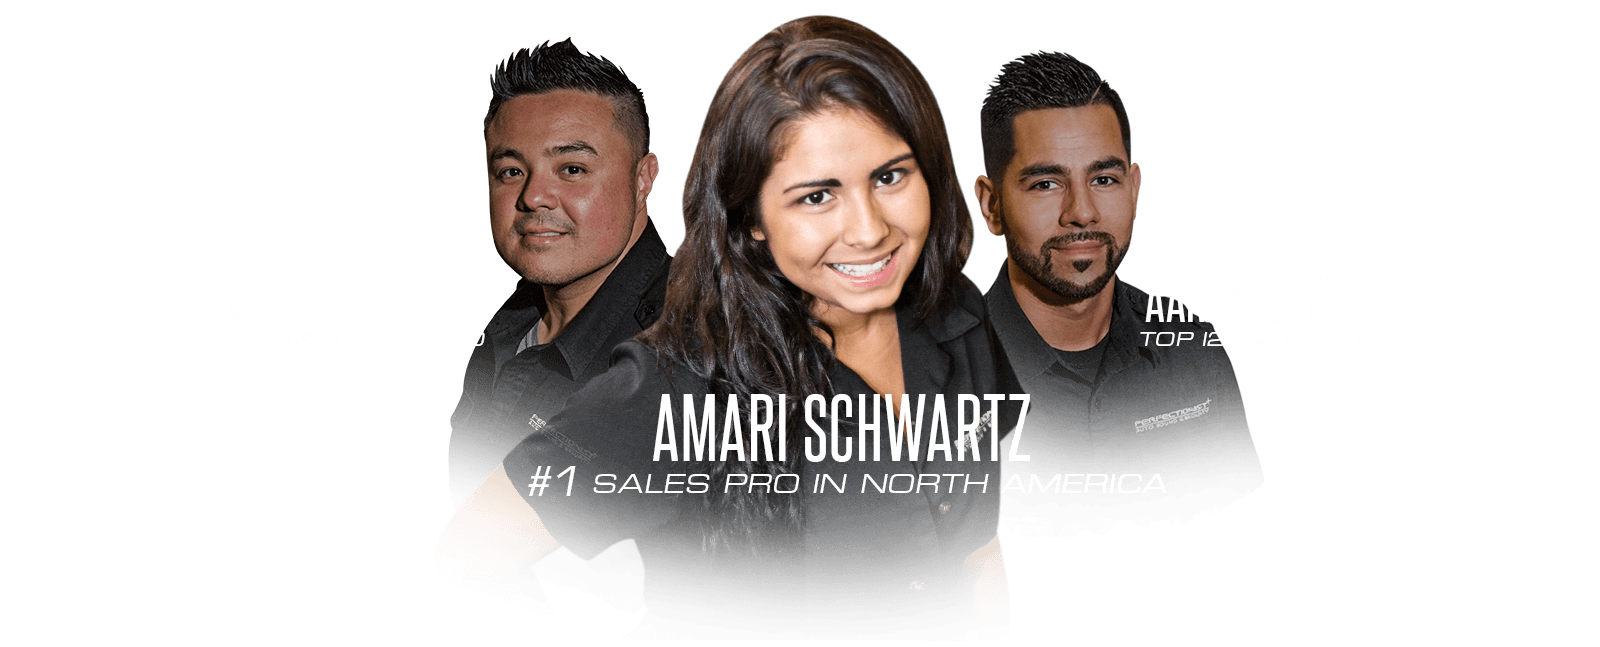 Amari Schwartz Top Sales Pro of the Year, Rob Kowatch Top 20 Sales Pro, Aaron Garcia Top 12 Installer